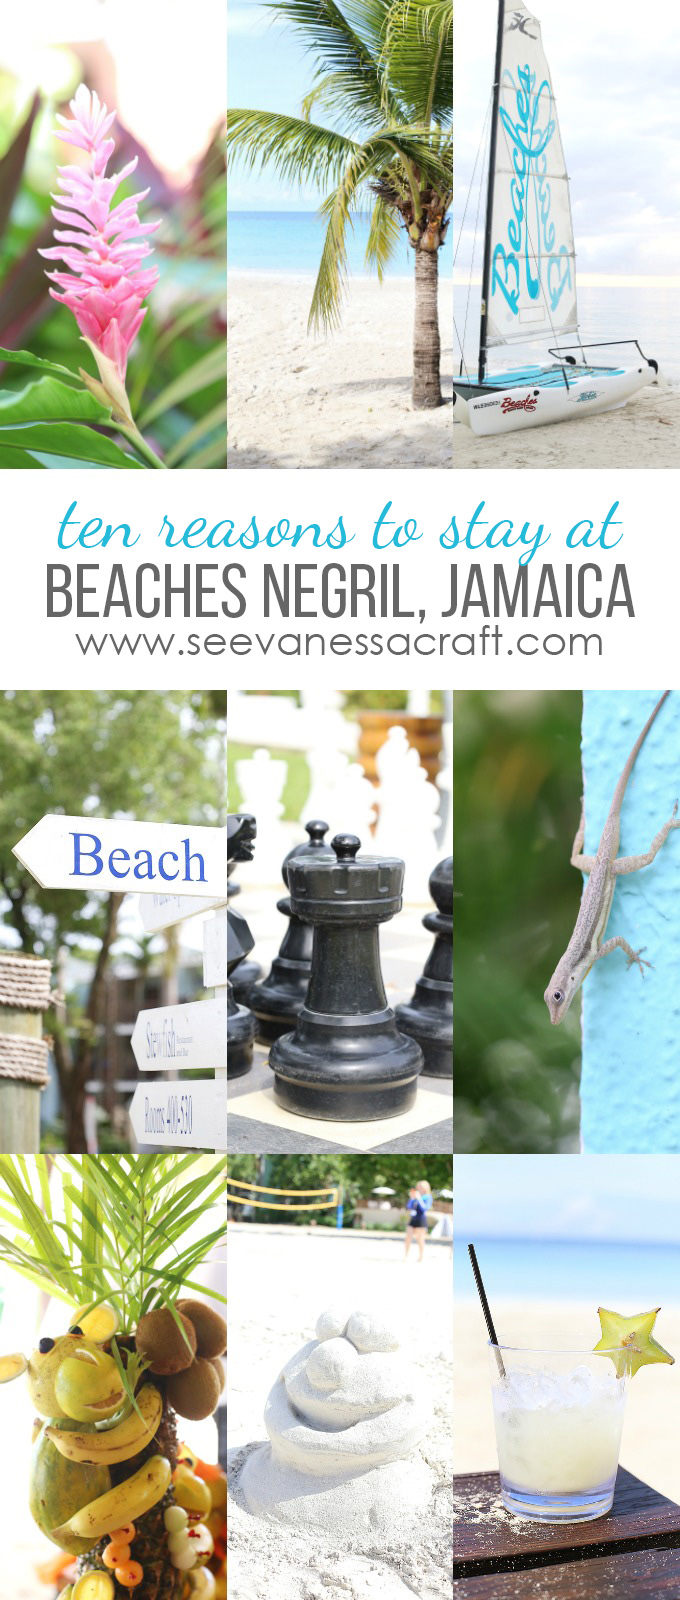 10 Reasons to Stay at Beaches Negril in Jamaica copy